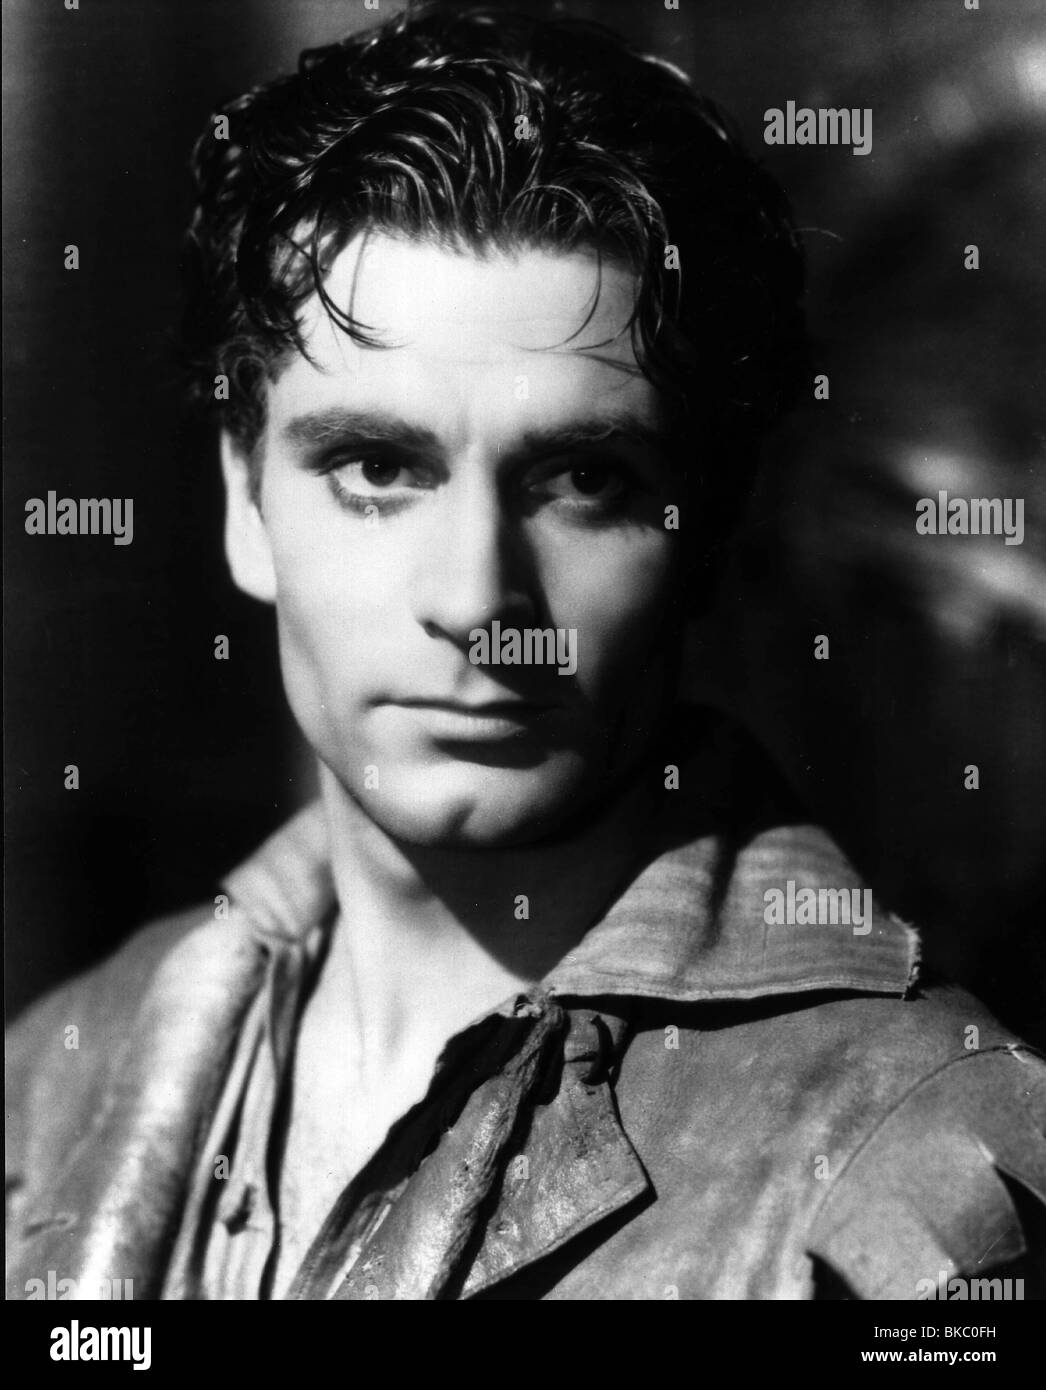 wuthering heights stock photos wuthering heights stock wuthering heights 1939 laurence olivier wth1 028p stock image